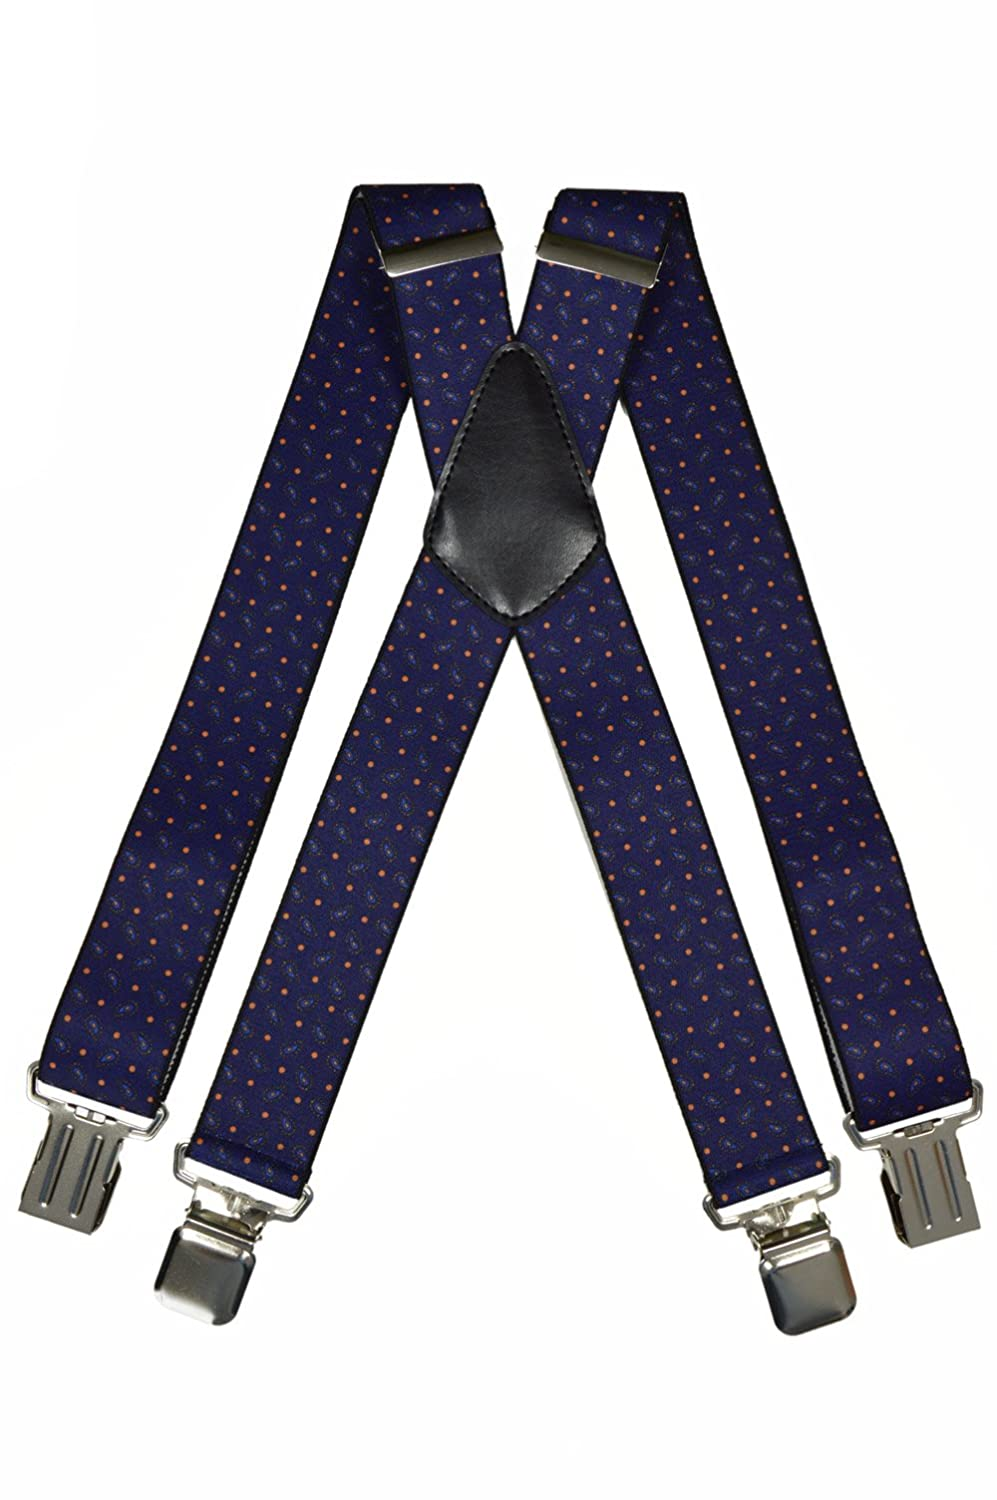 Men's Heavy Duty Formal Printed X-Shape Braces/Suspenders with Strong Clips, 4cm BRACES2C2015R